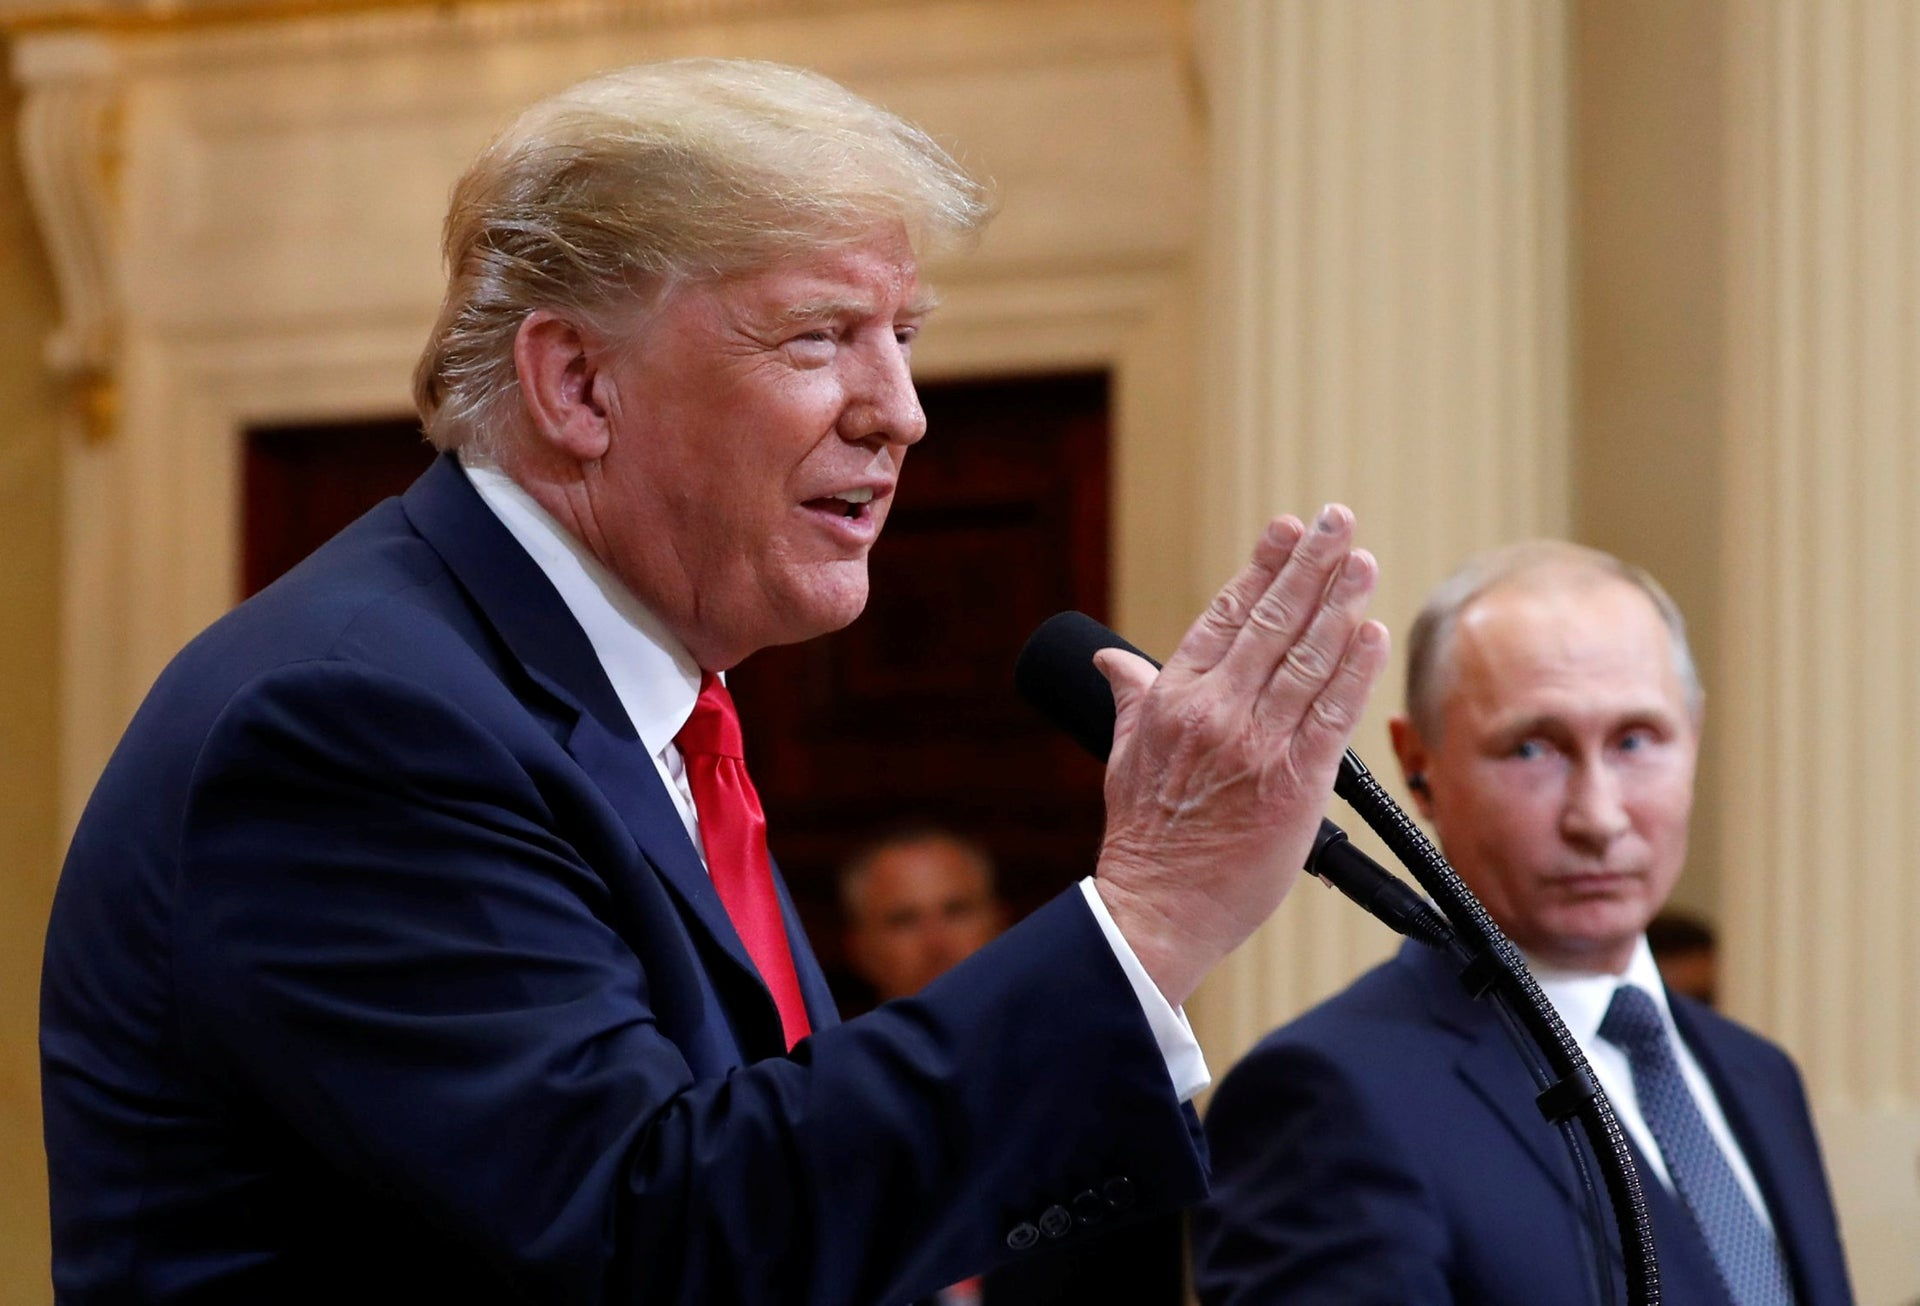 U.S. President Donald Trump speaking with Russian President Vladimir Putin during a press conference after their meeting at the Presidential Palace in Helsinki, Finland, July 16, 2018.